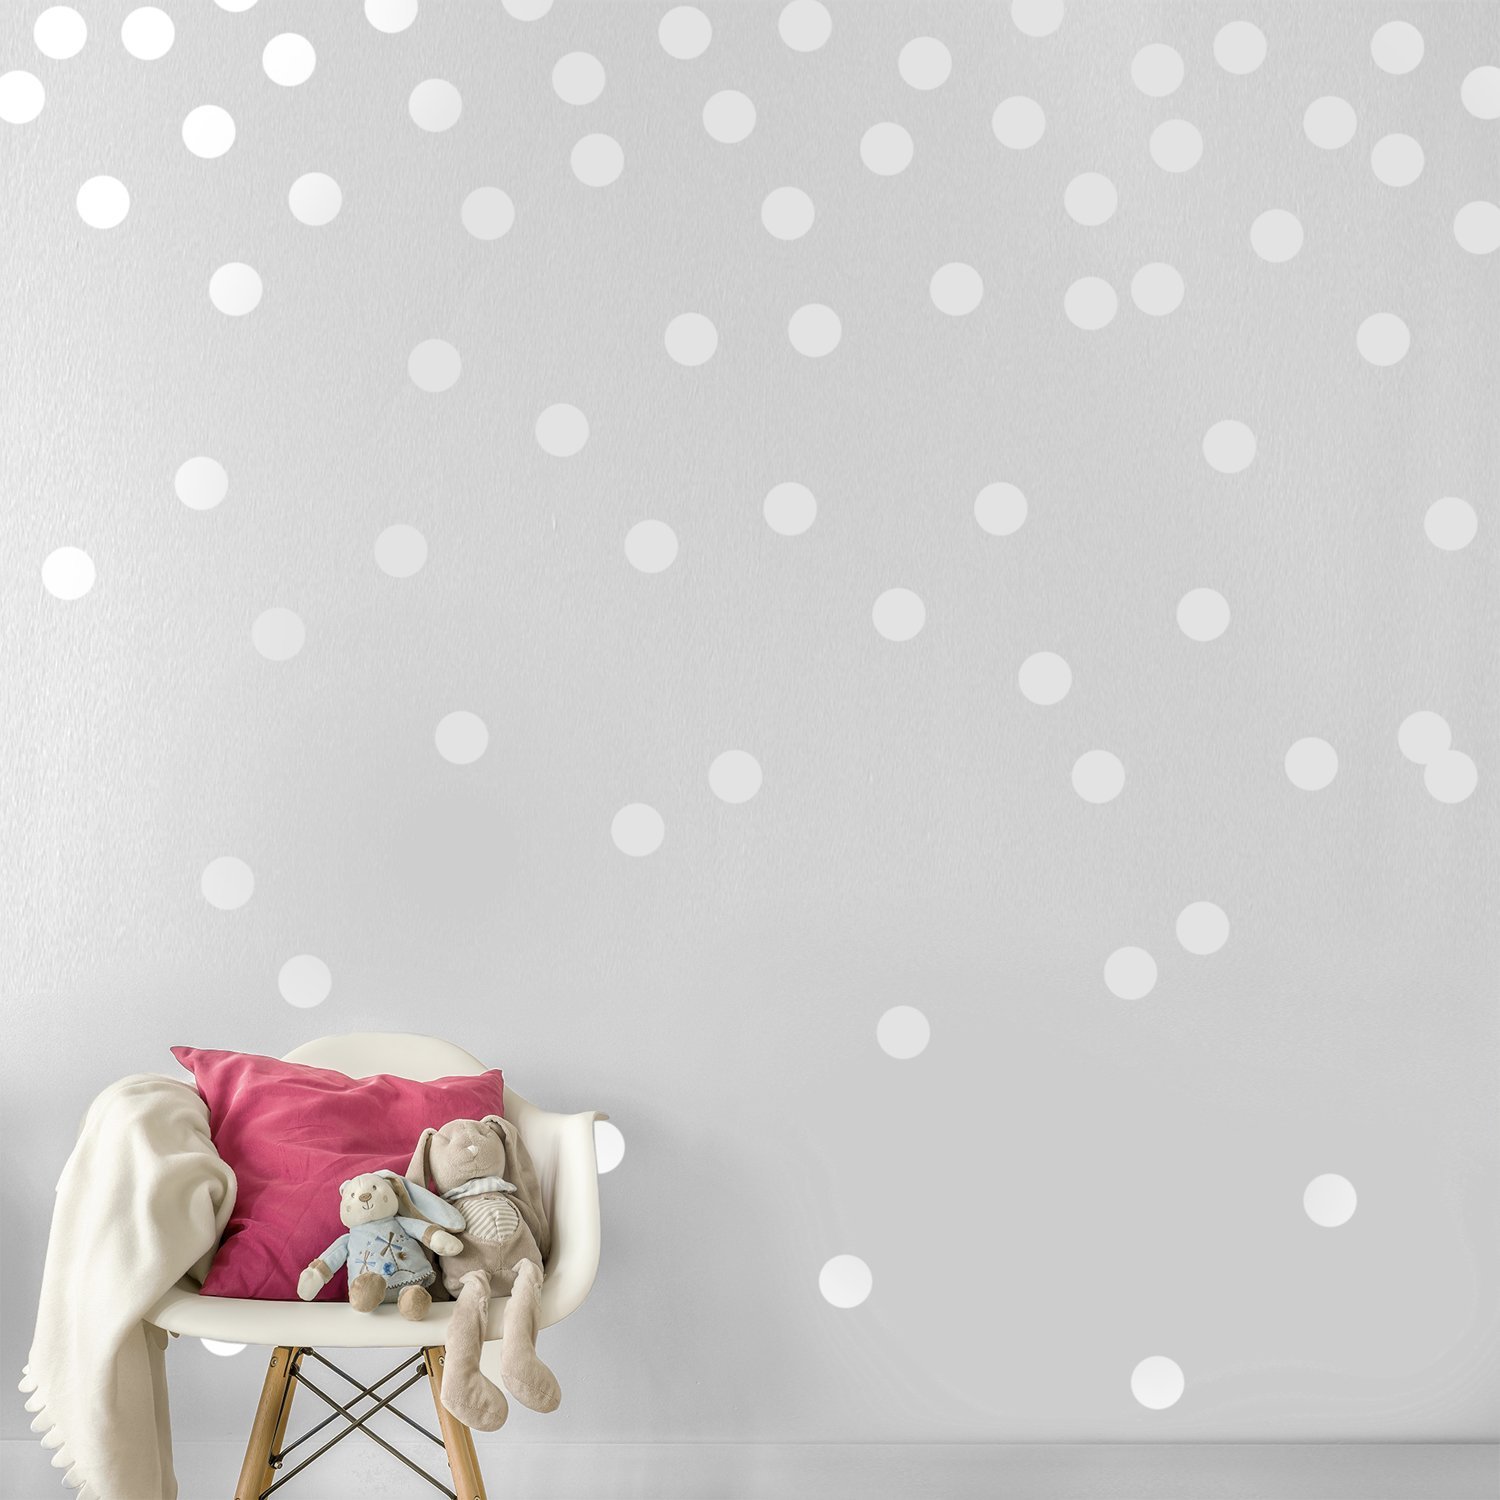 White Wall Decal Dots (200 Decals) | Easy Peel & Stick + Safe on Walls Paint | Removable Matte Vinyl Polka Dot Decor | Round Circle Art Glitter Sayings Sticker Large Paper Sheet Set for Nursery Room